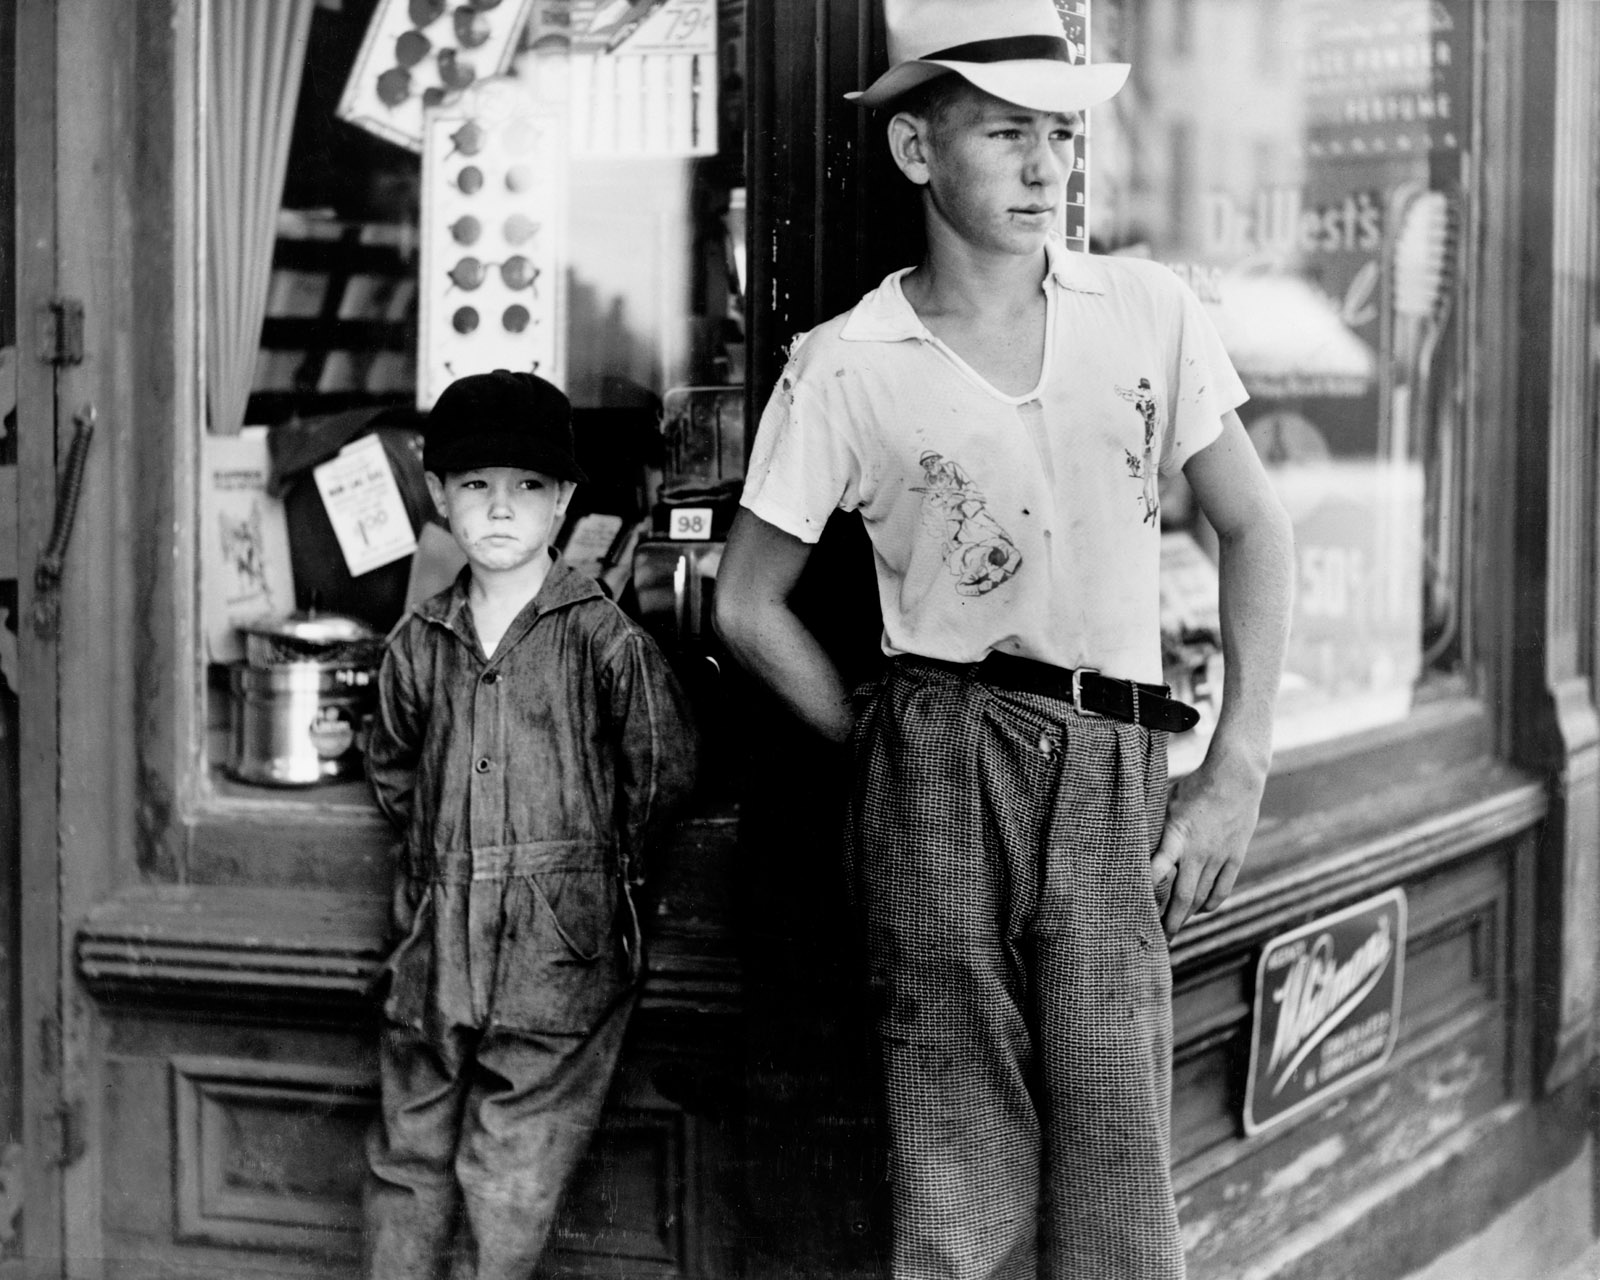 Boys in front of drugstore, Dover, Delaware, July 1938